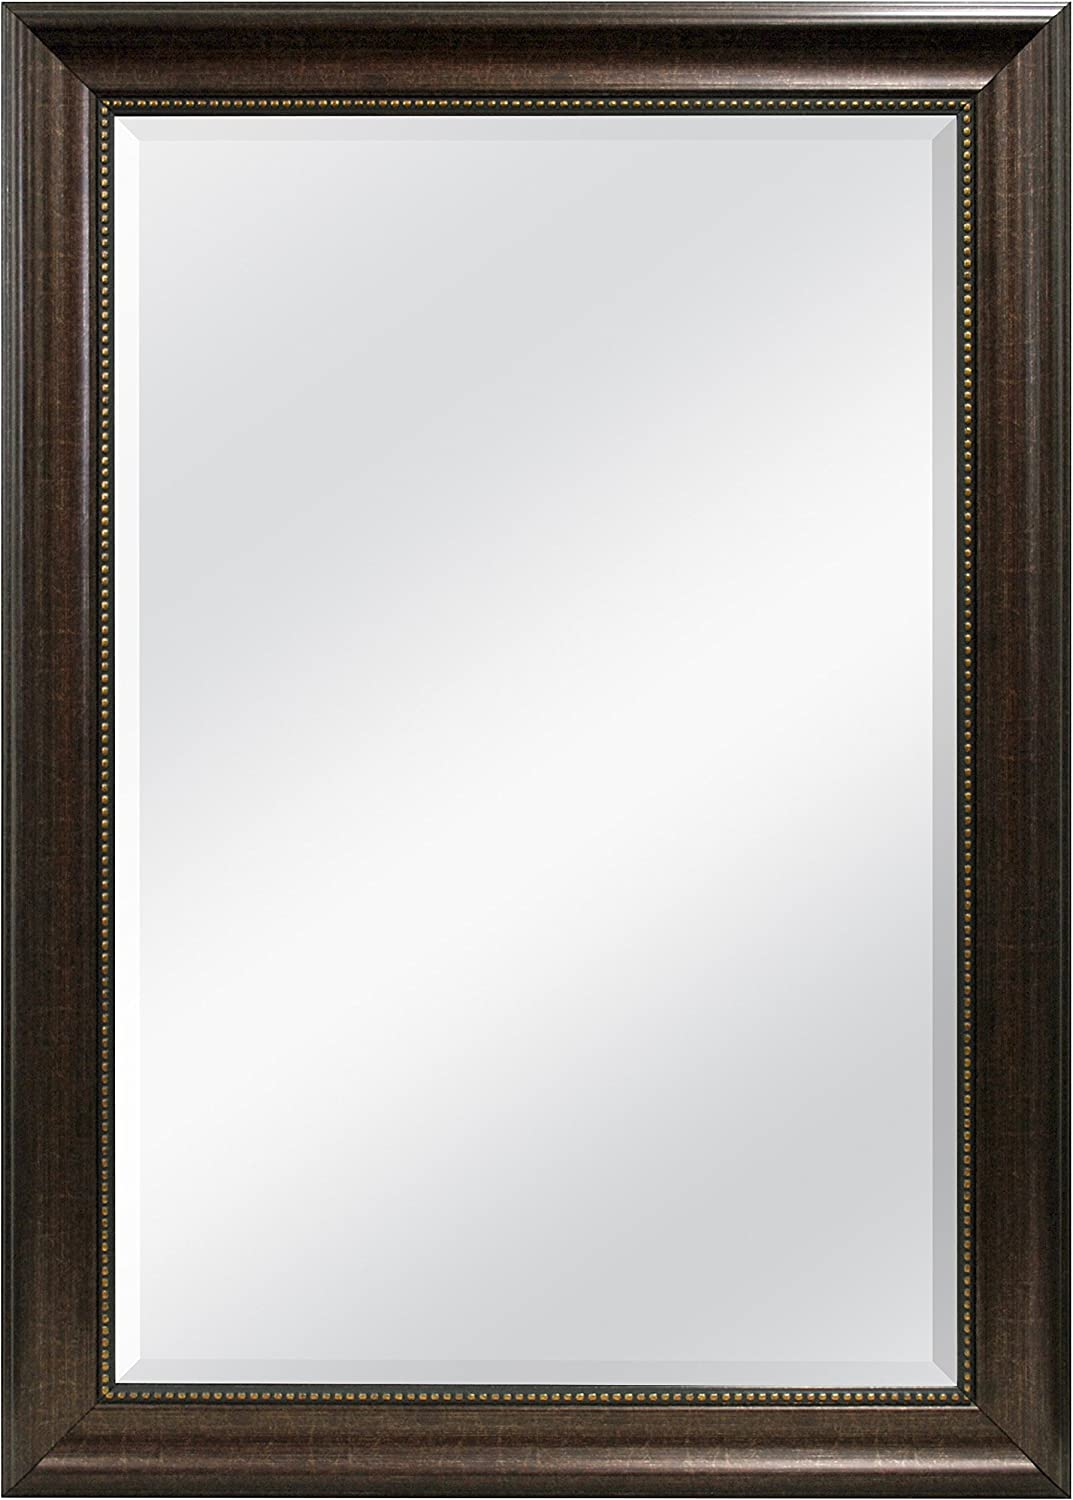 MCS 20677 Beaded Trim Finish 24 by 36-Inch Beveled Mirror with 30.2 by 40.2-Inch Frame, Bronze